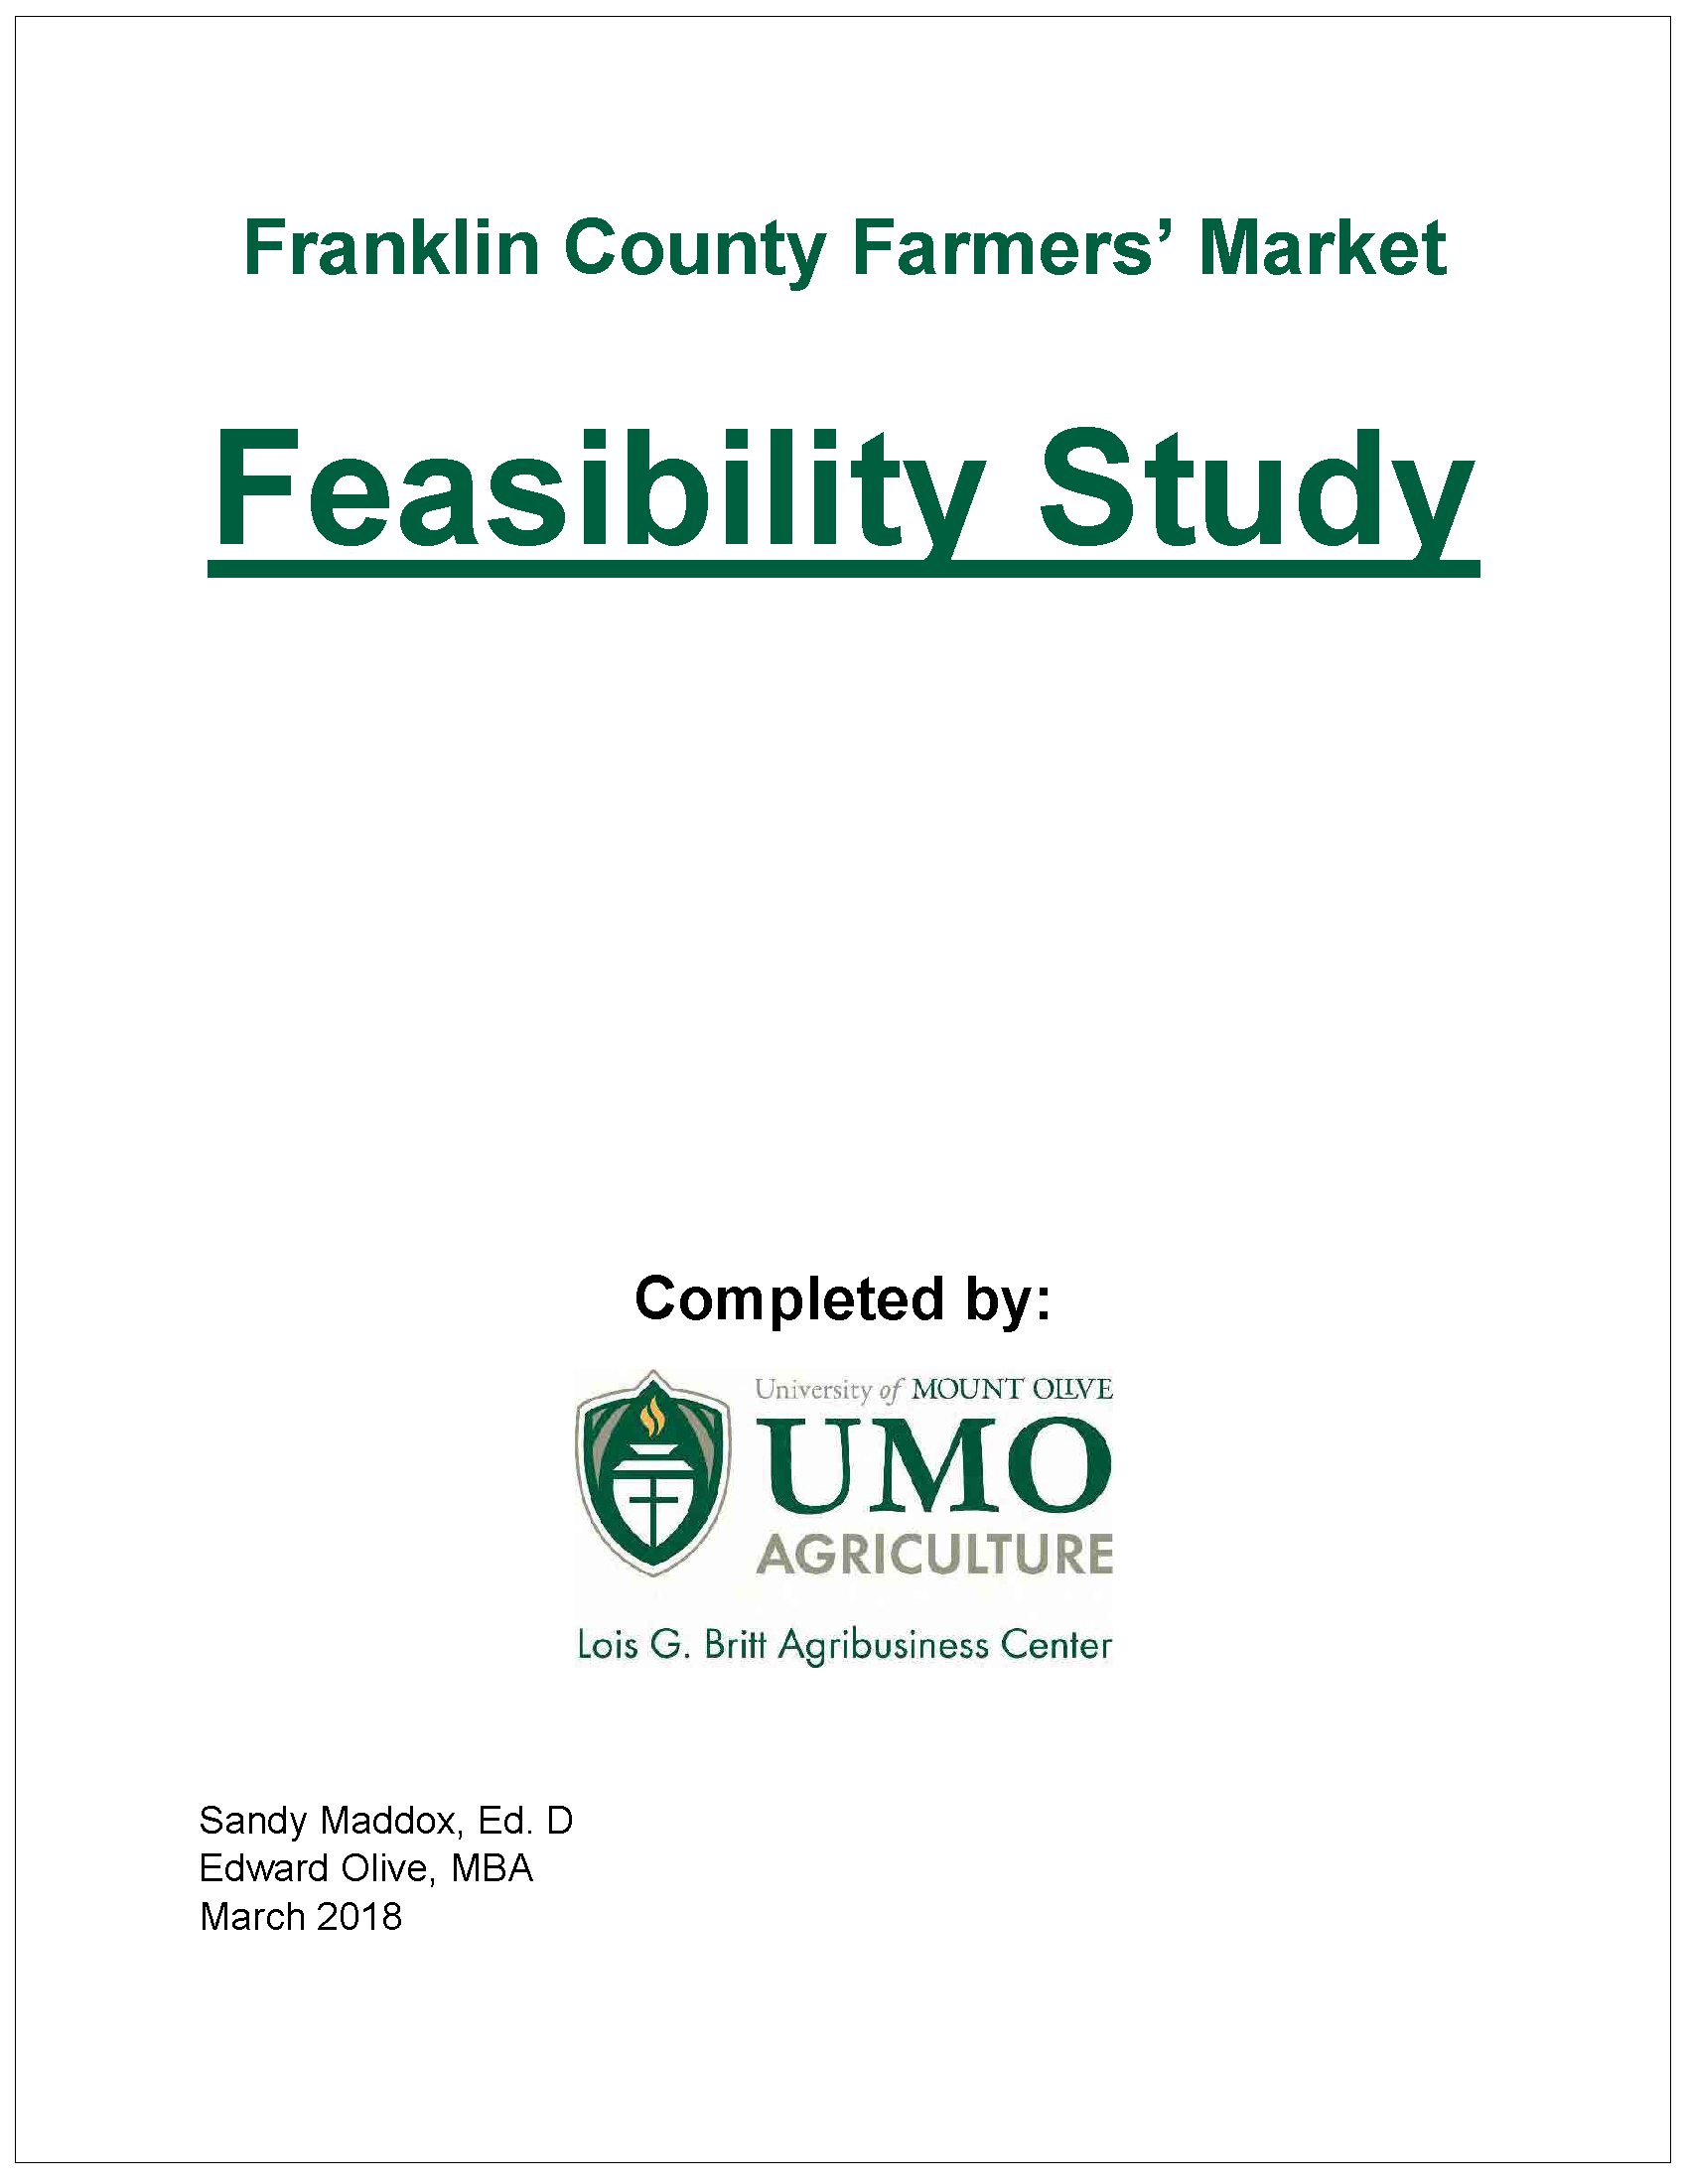 Franklin County Farmers' Market Feasibility Study cover